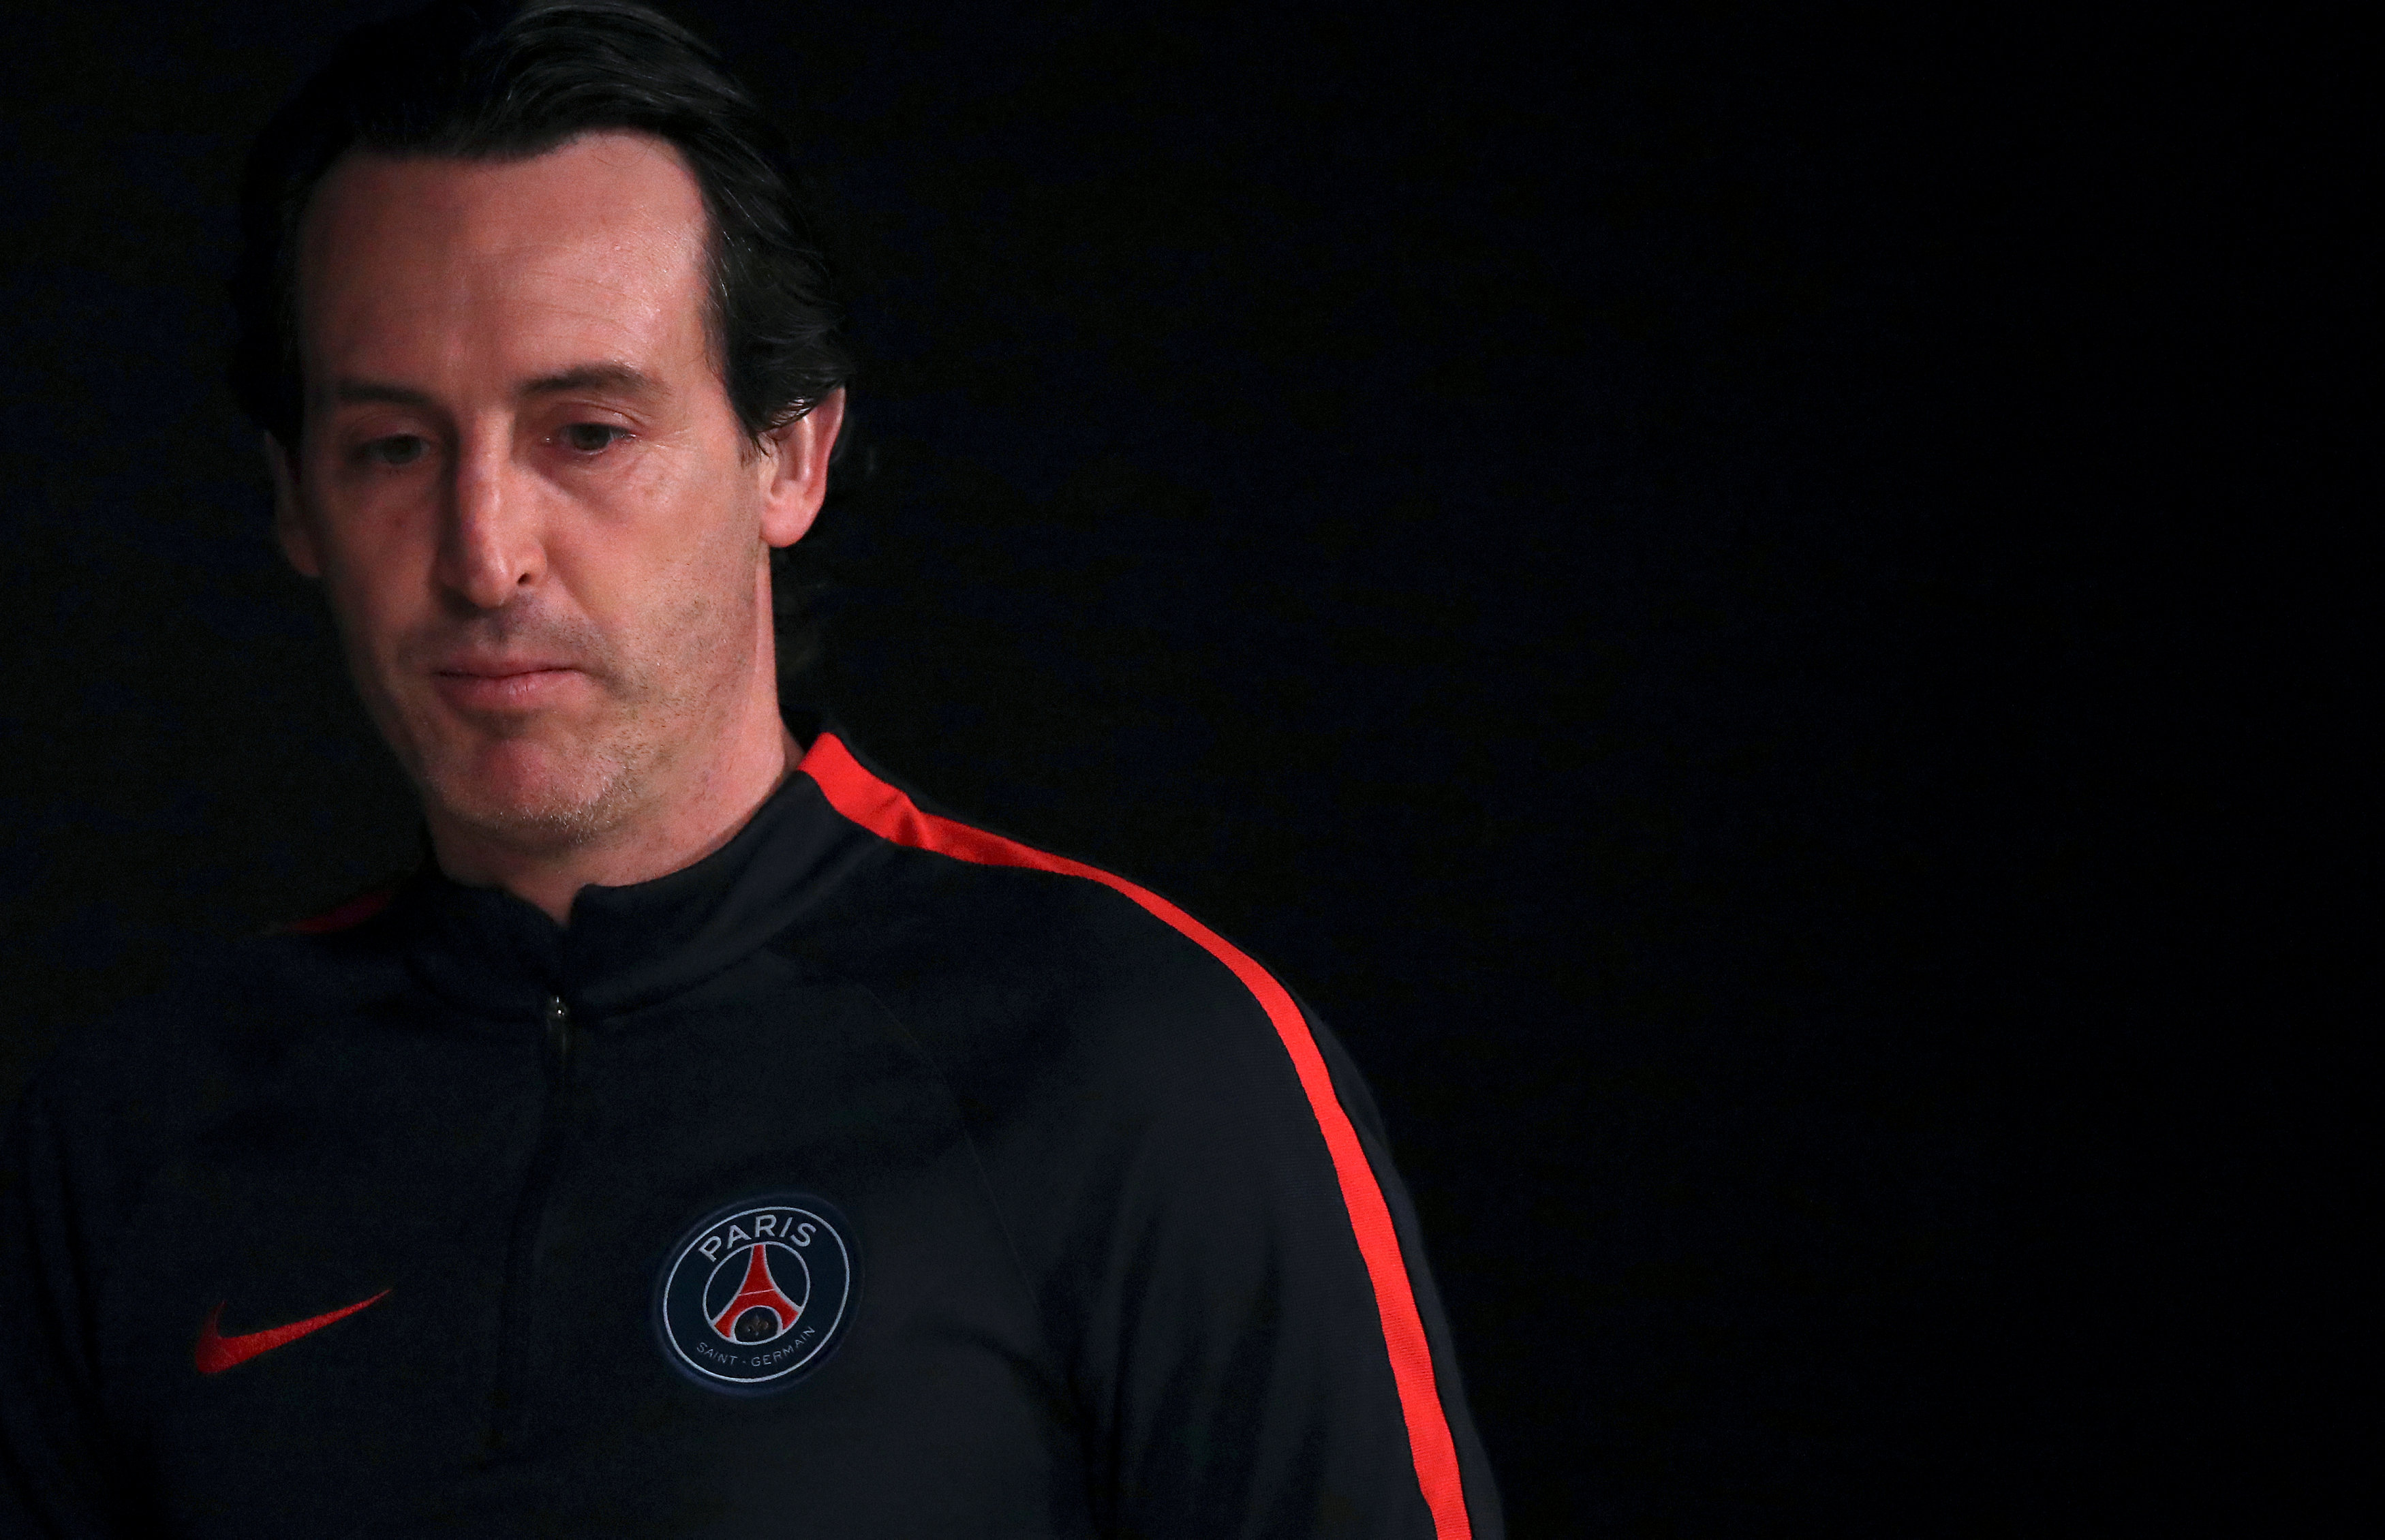 paris st germain coach unai emery attends a news conference on february 13 2017 photo reuters